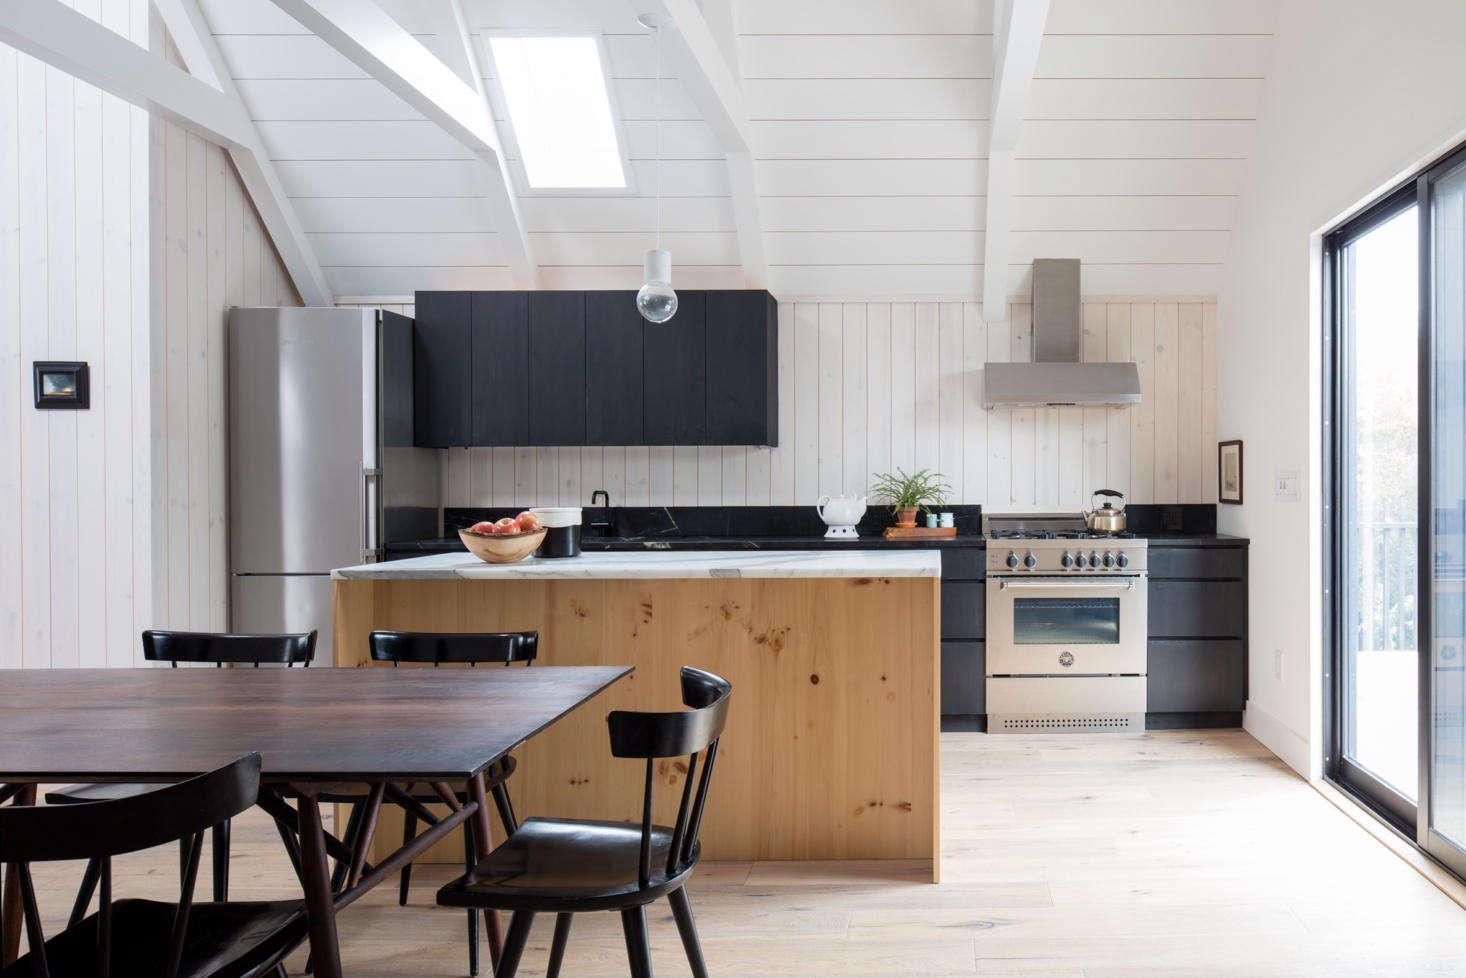 Though the kitchen is compact, it has a full suite of appliances, including a four-burnerBertazzoni range and a Bosch refrigerator (see  Easy Pieces: Best Skinny Refrigerators). The cabinets are pine wood, stained the same black color as the exterior cladding. &#8